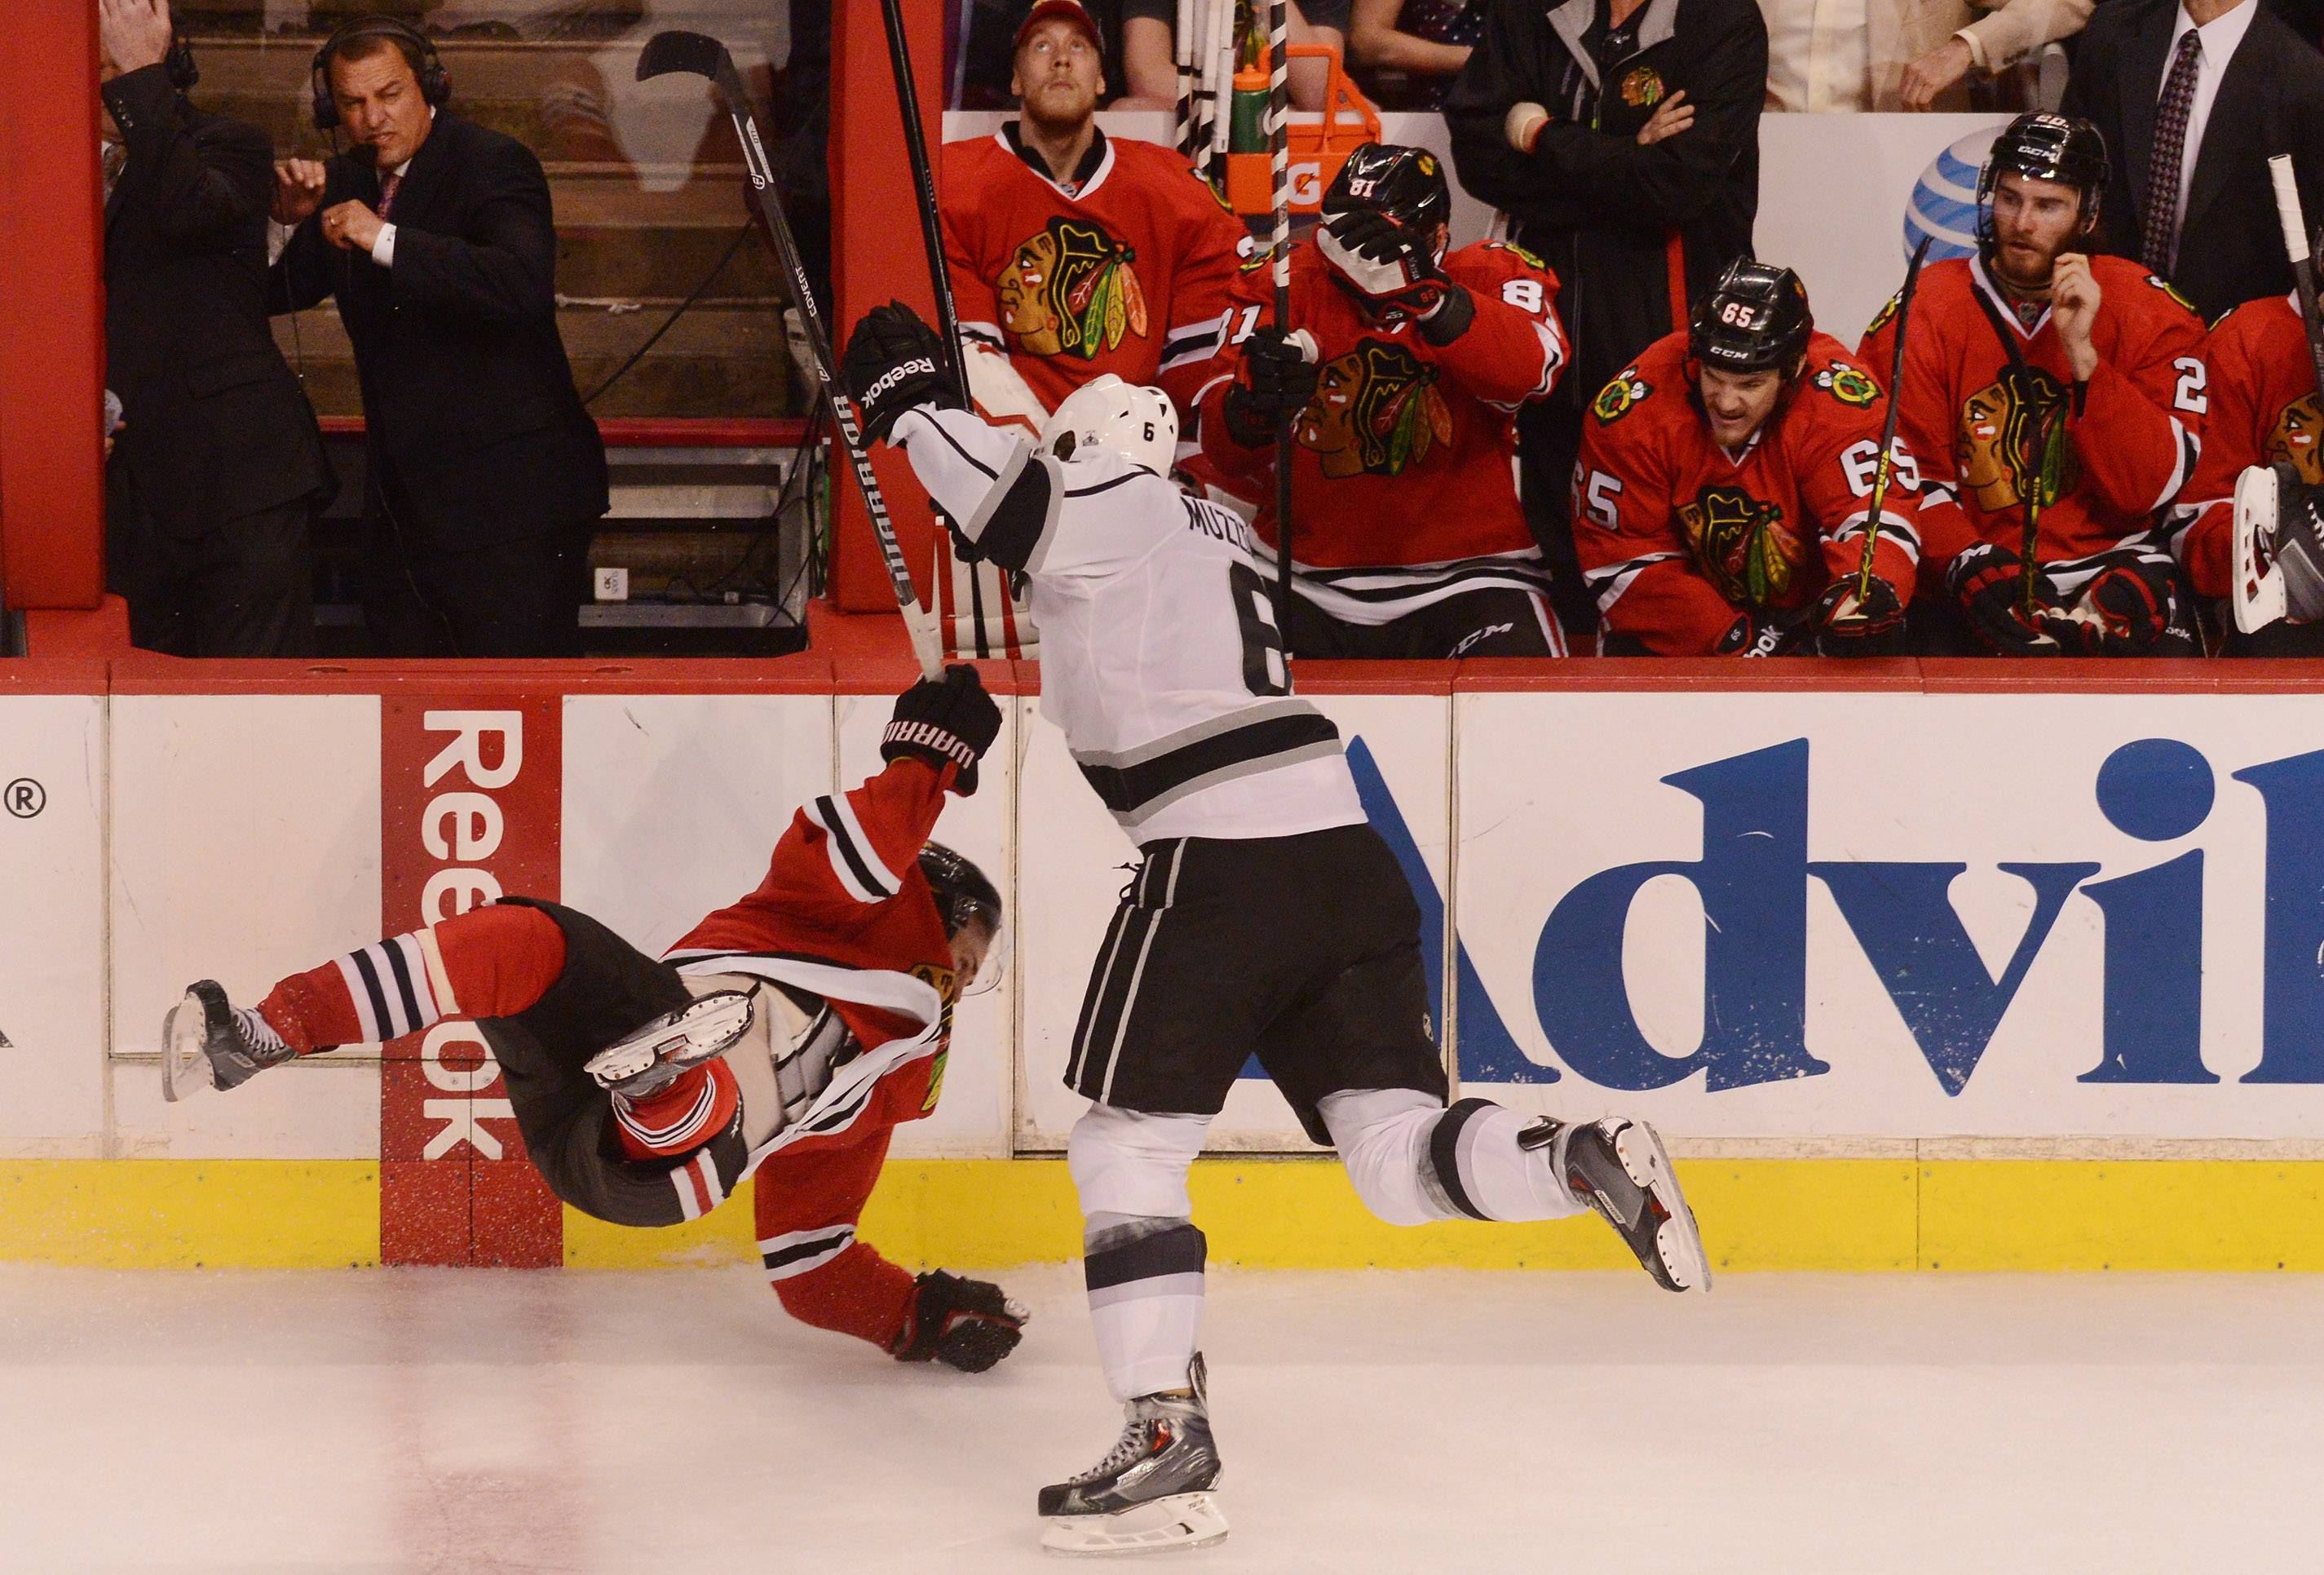 Chicago Blackhawks center Marcus Kruger gets hit by Los Angeles Kings defenseman Jake Muzzin in the third period.